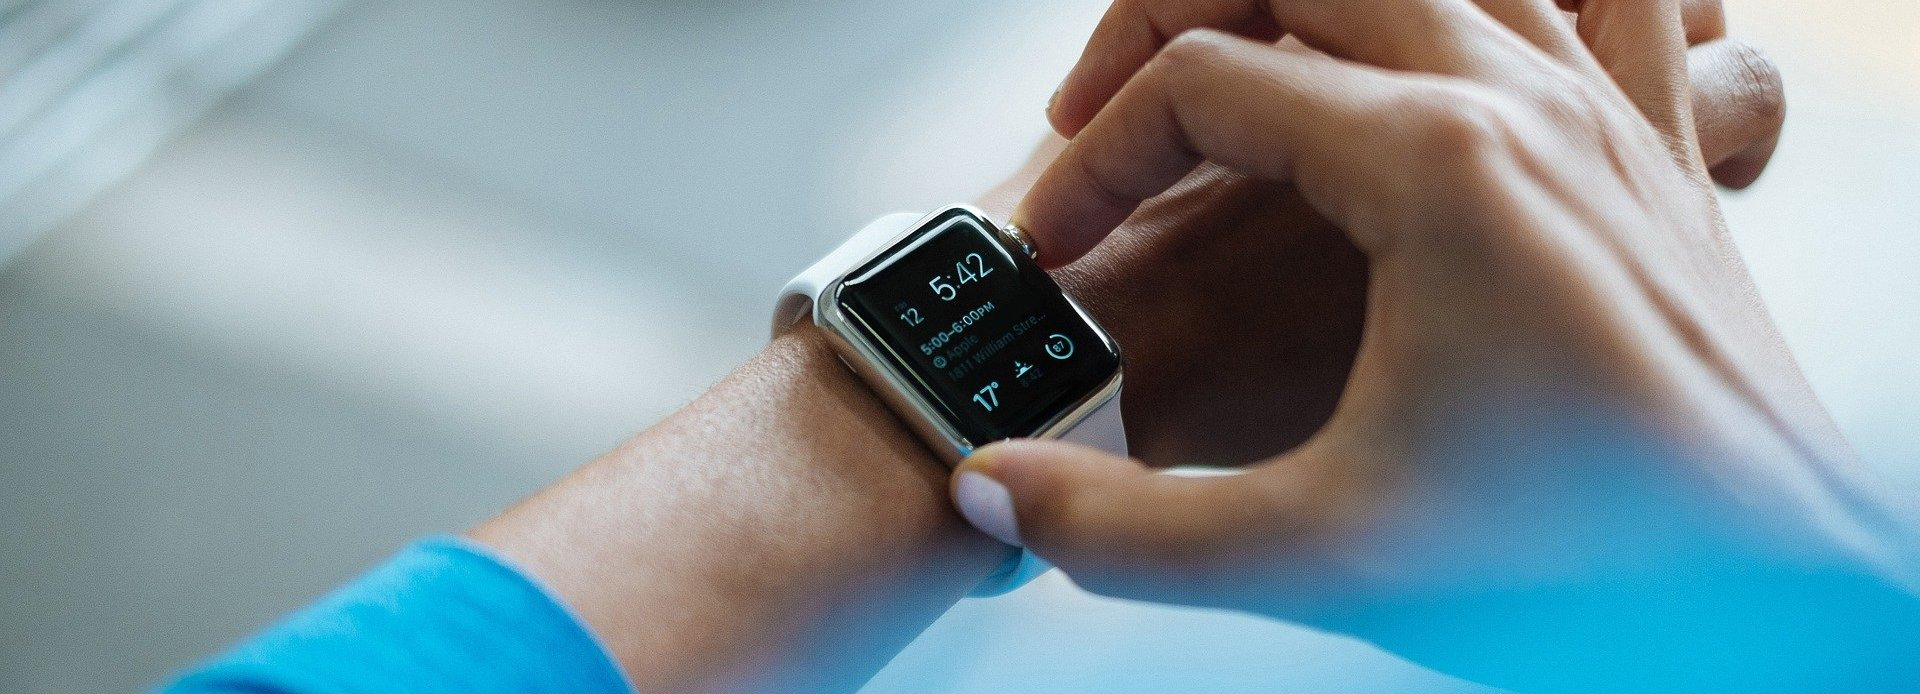 Wearables - wrist